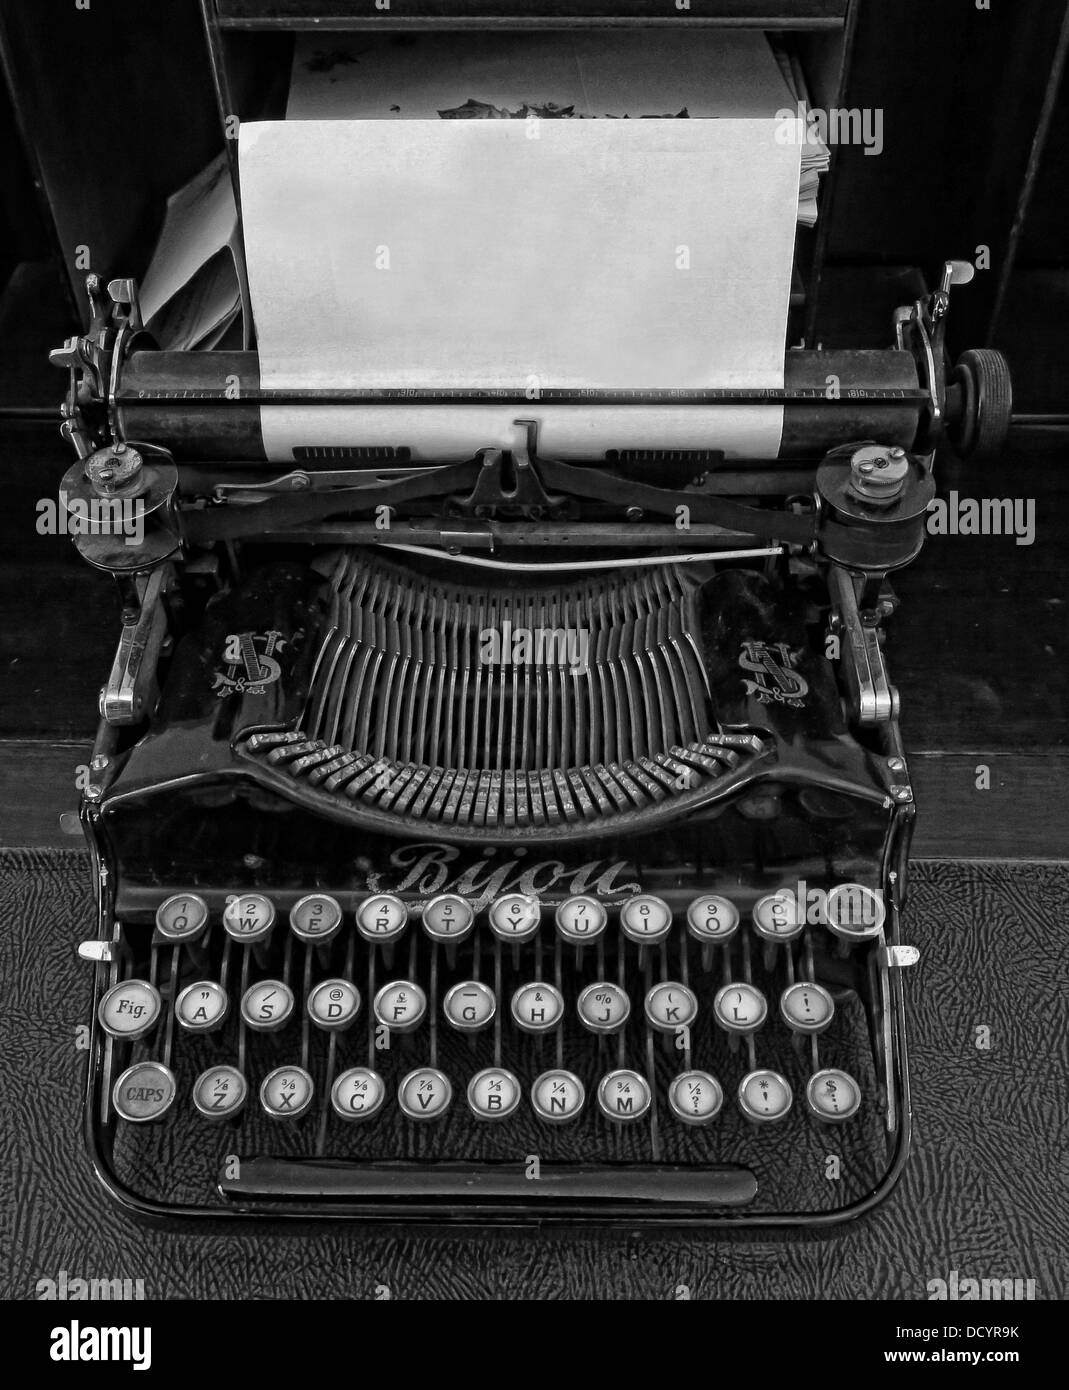 An old fashioned typewriter with a blank sheet of paper for a new message - Stock Image